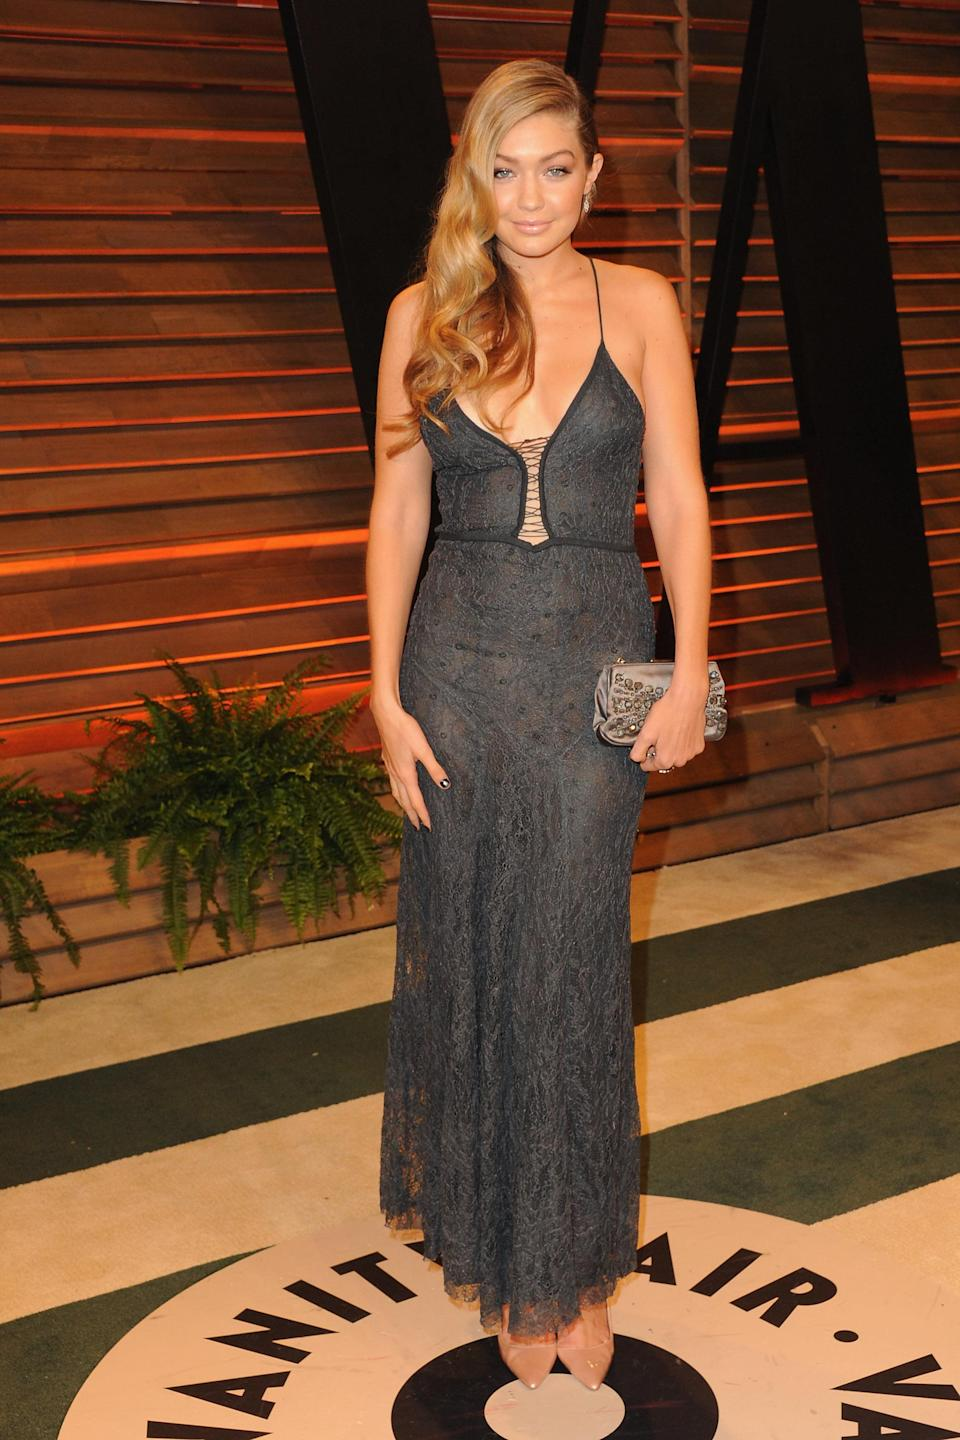 This gray, lacy dress on Hadid at the 2014 Oscars after-party is simply stunning.